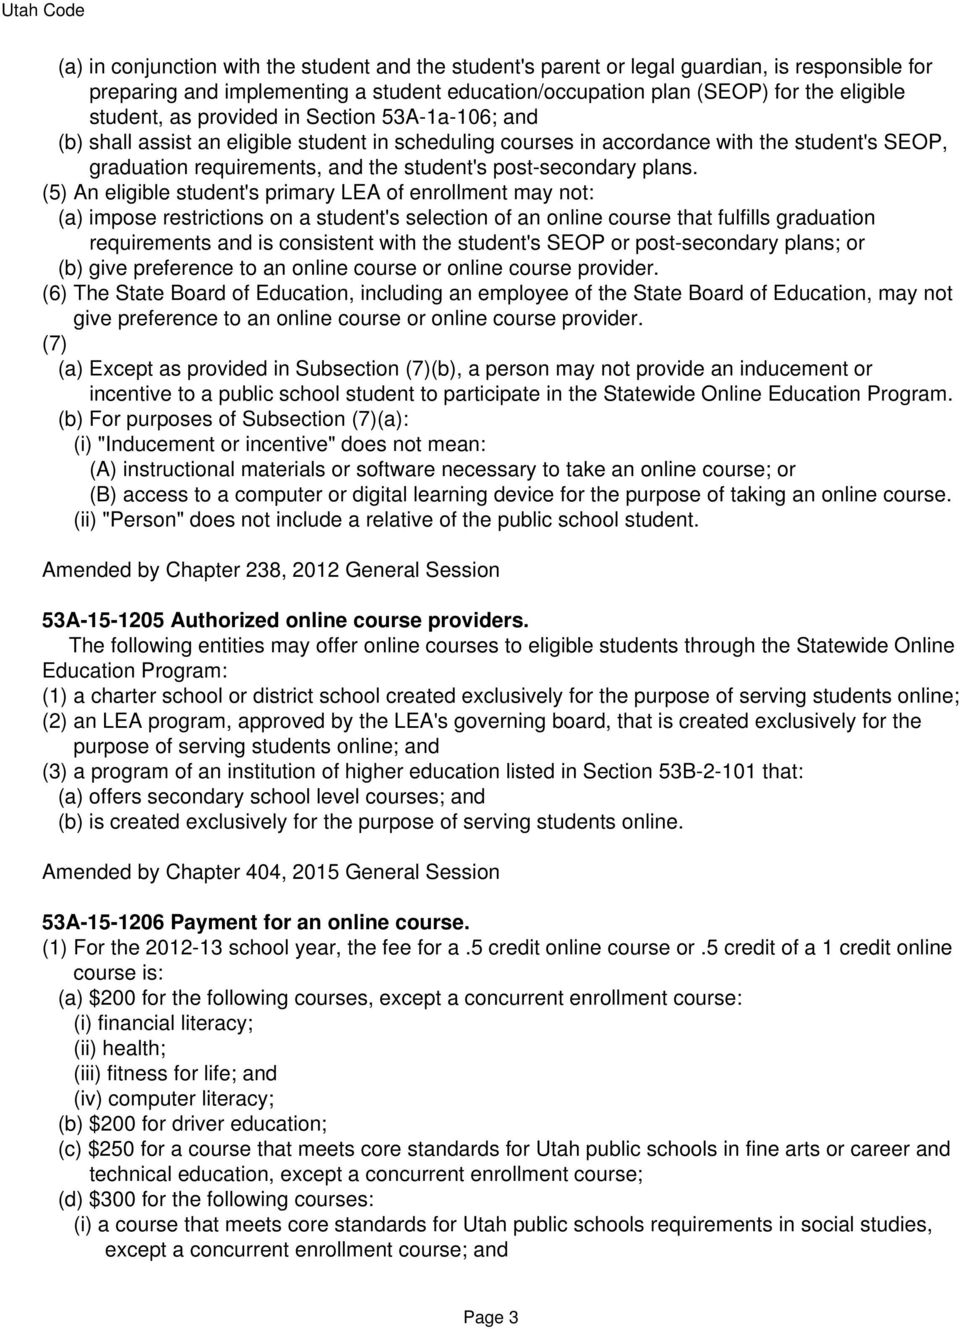 (5) An eligible student's primary LEA of enrollment may not: (a) impose restrictions on a student's selection of an online course that fulfills graduation requirements and is consistent with the